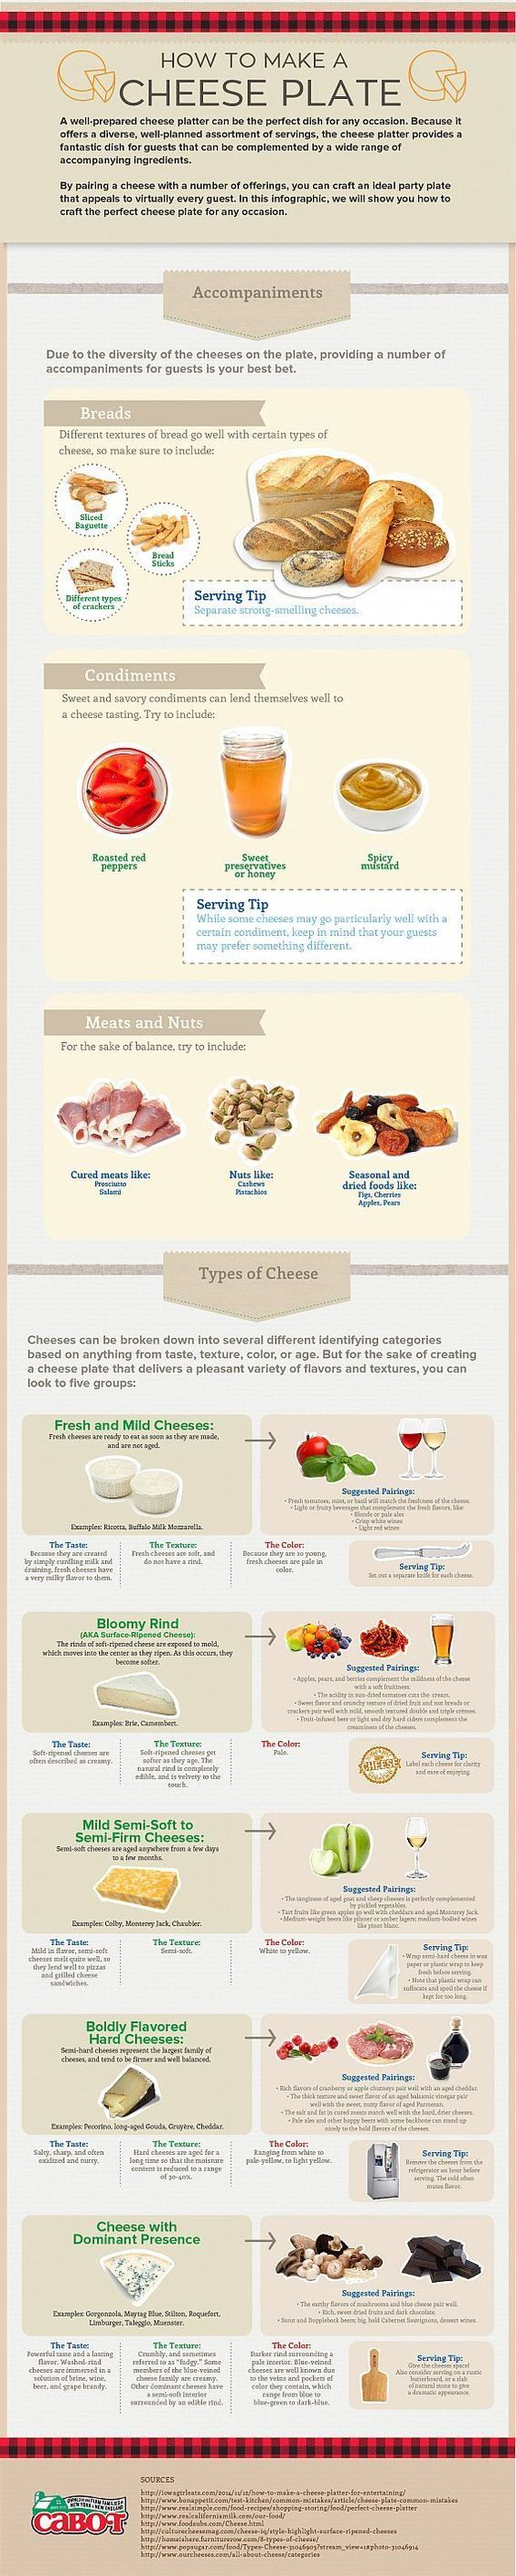 Great resource --> How to Make a Cheese Plate #cheeseboard @cabotcheese: